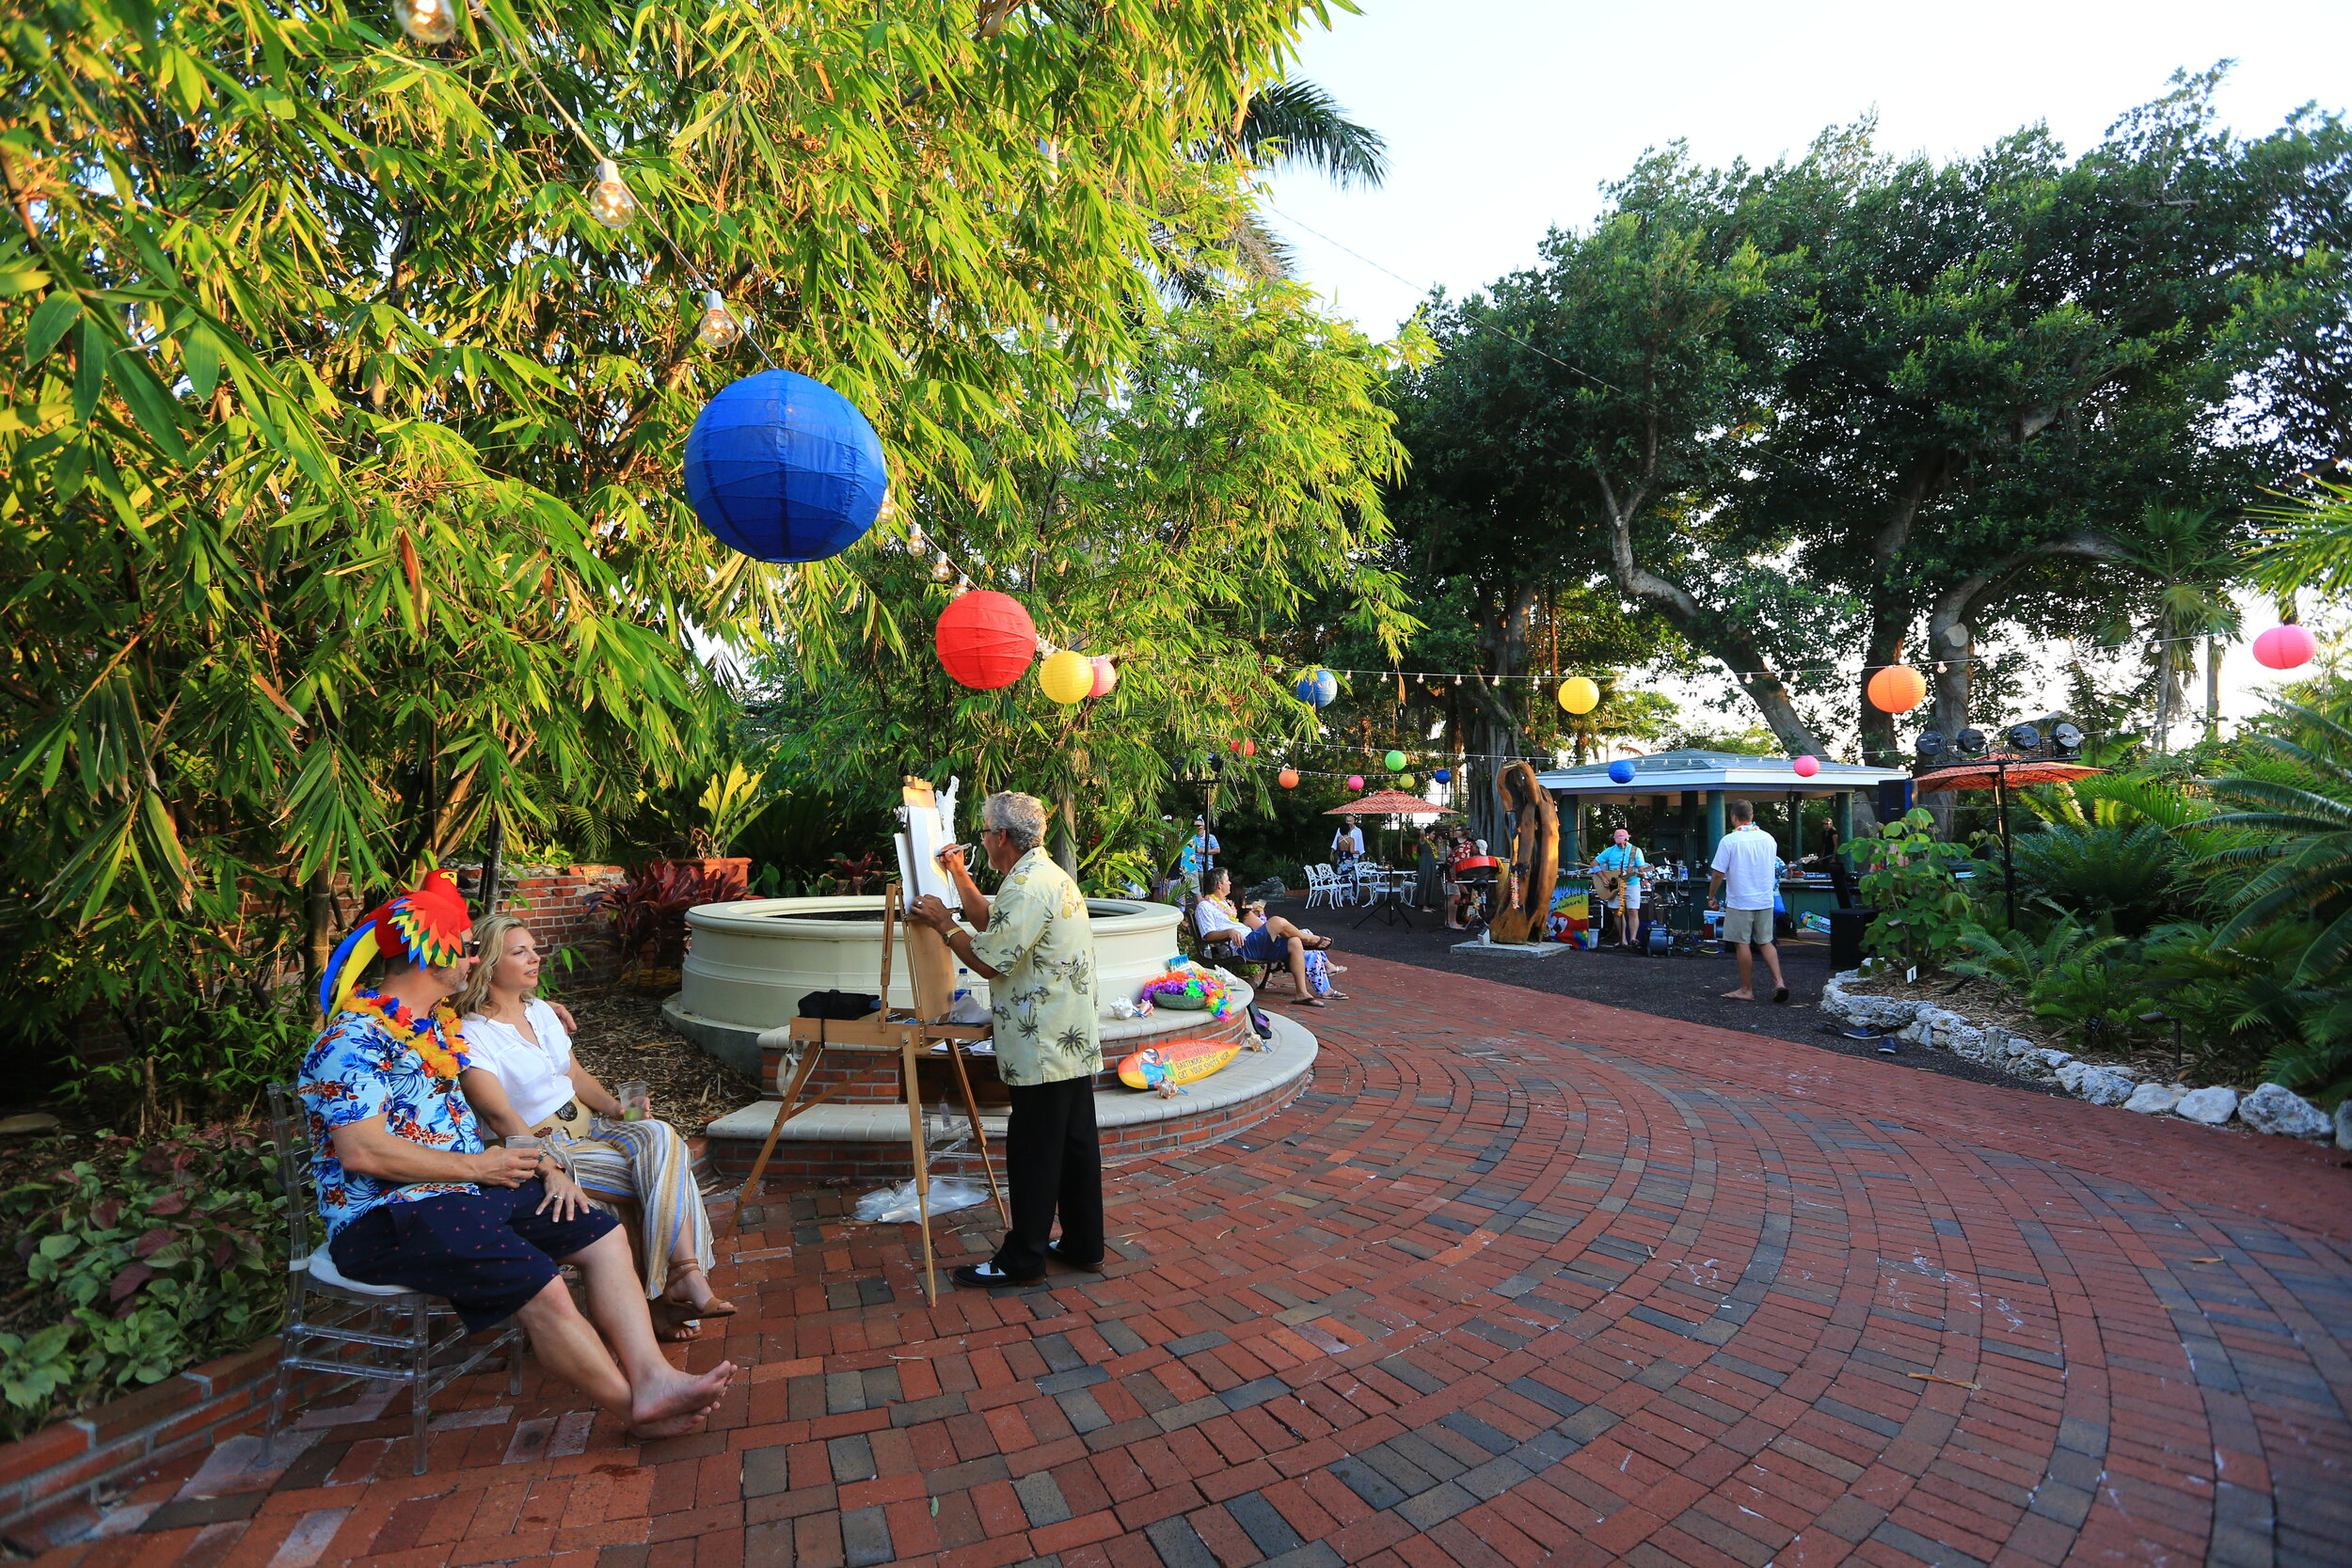 Key West Garden Club at West Martello Tower   Photo by Solaris Photography